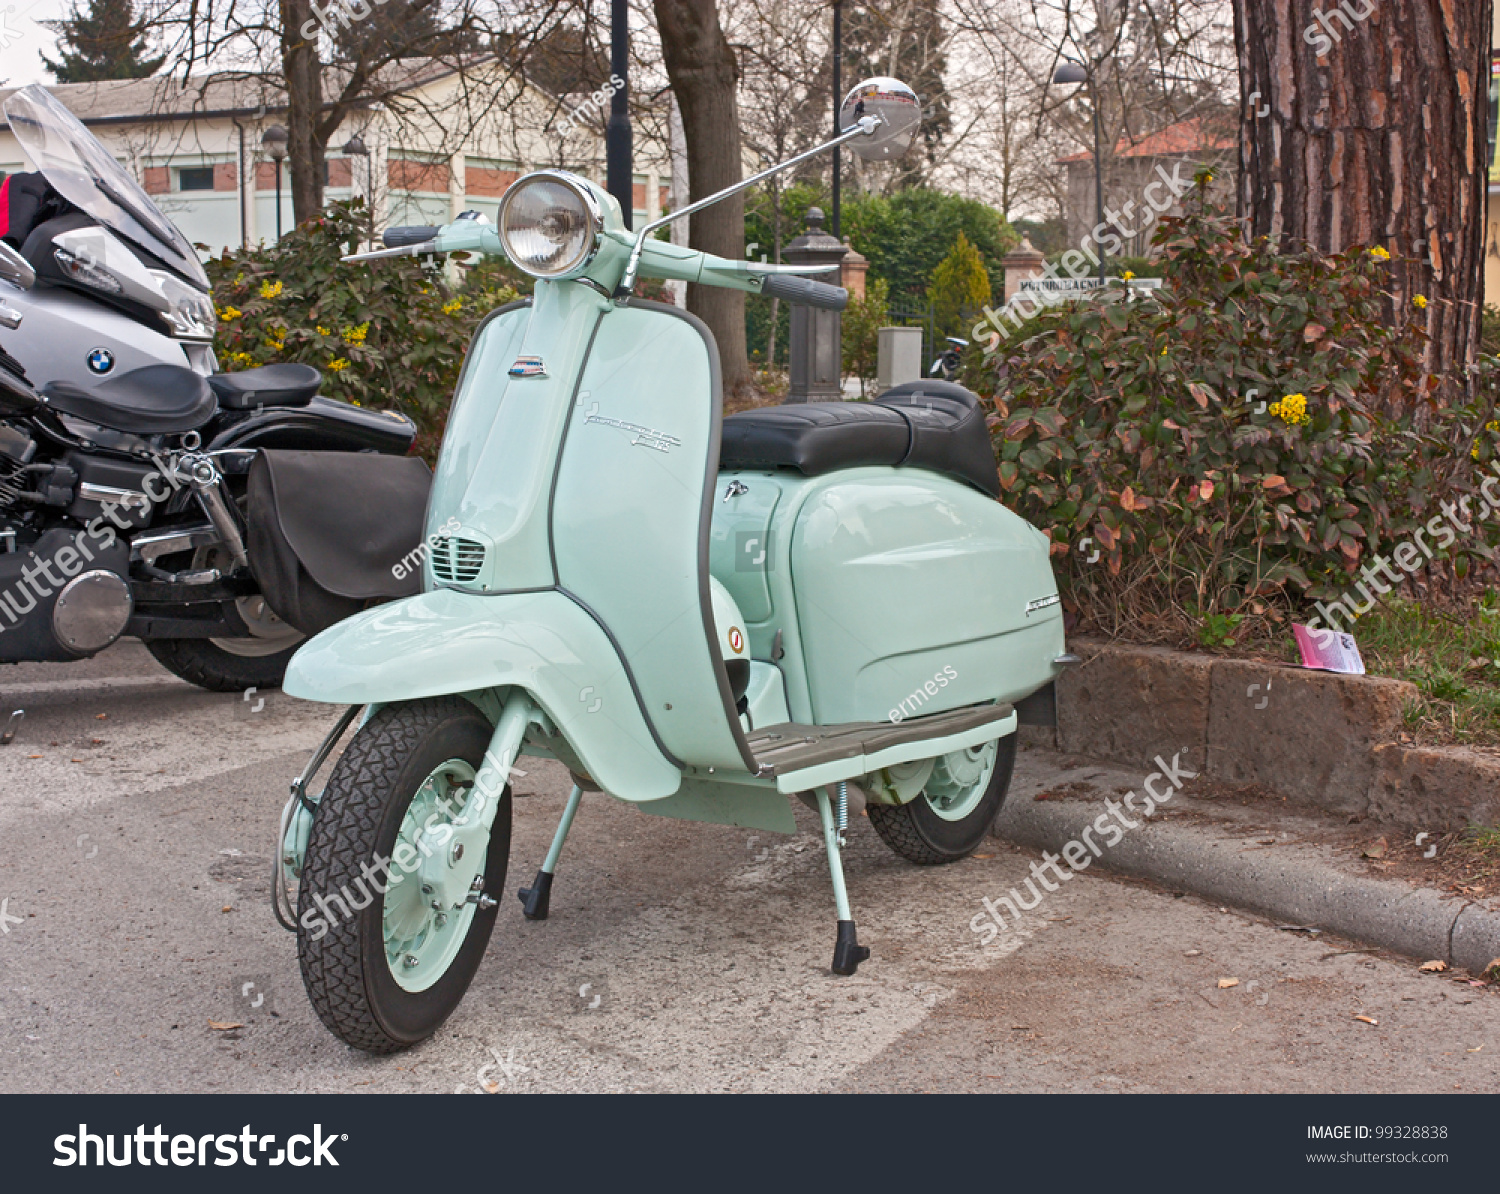 Lugo Italy  city pictures gallery : VOLTANA DI LUGO RA ITALY MARCH 25: vintage italian scooter ...